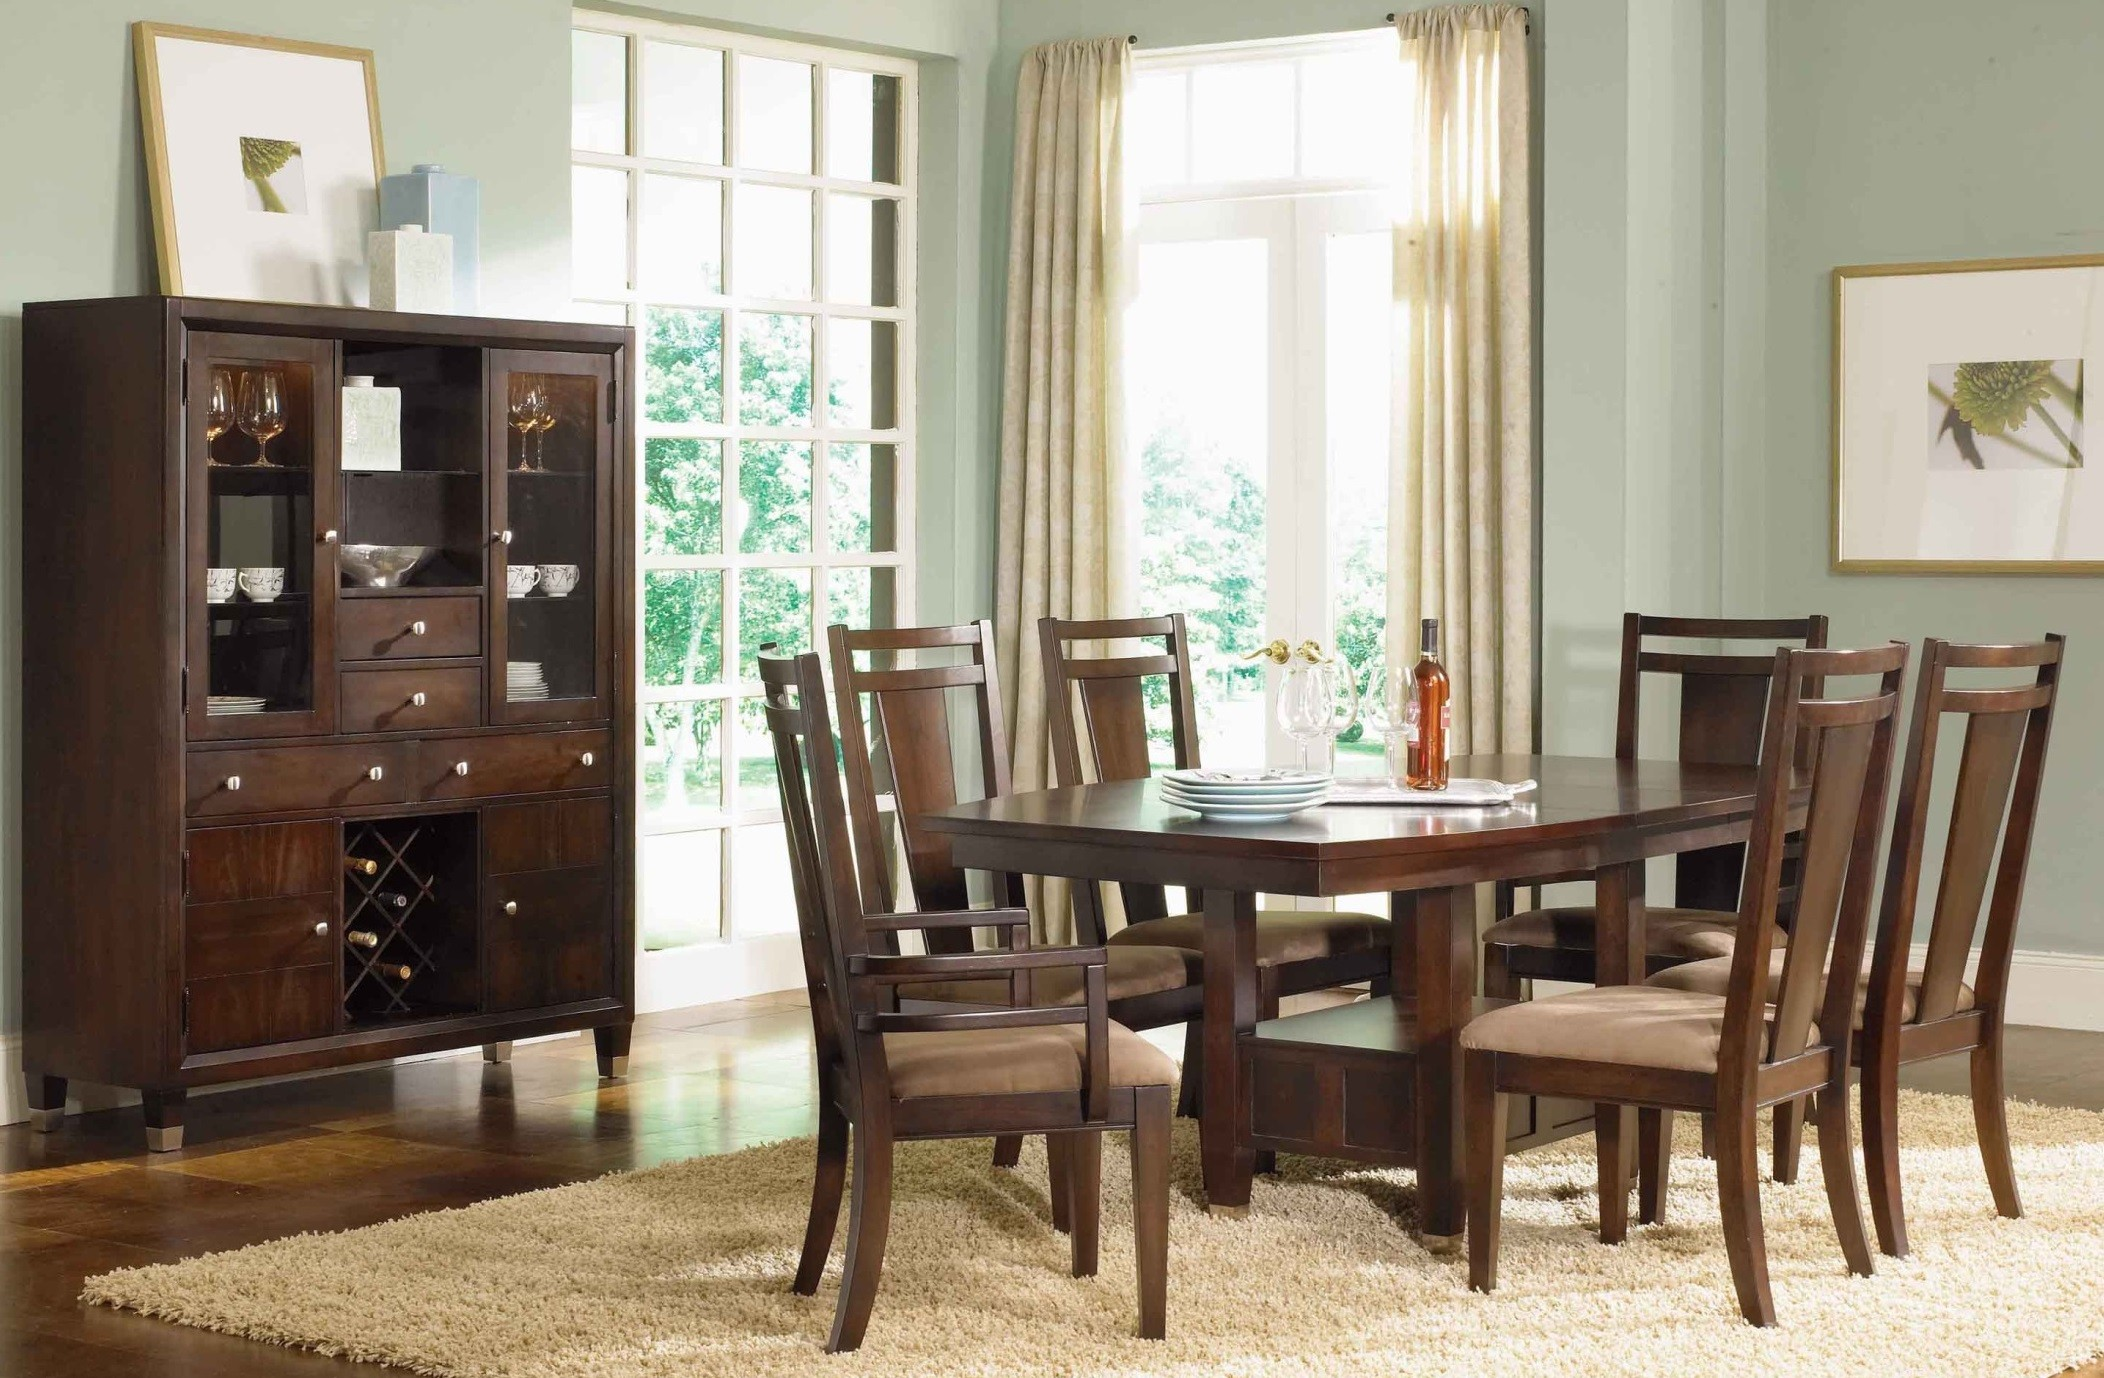 northern lights extendable dining room set from broyhill | coleman